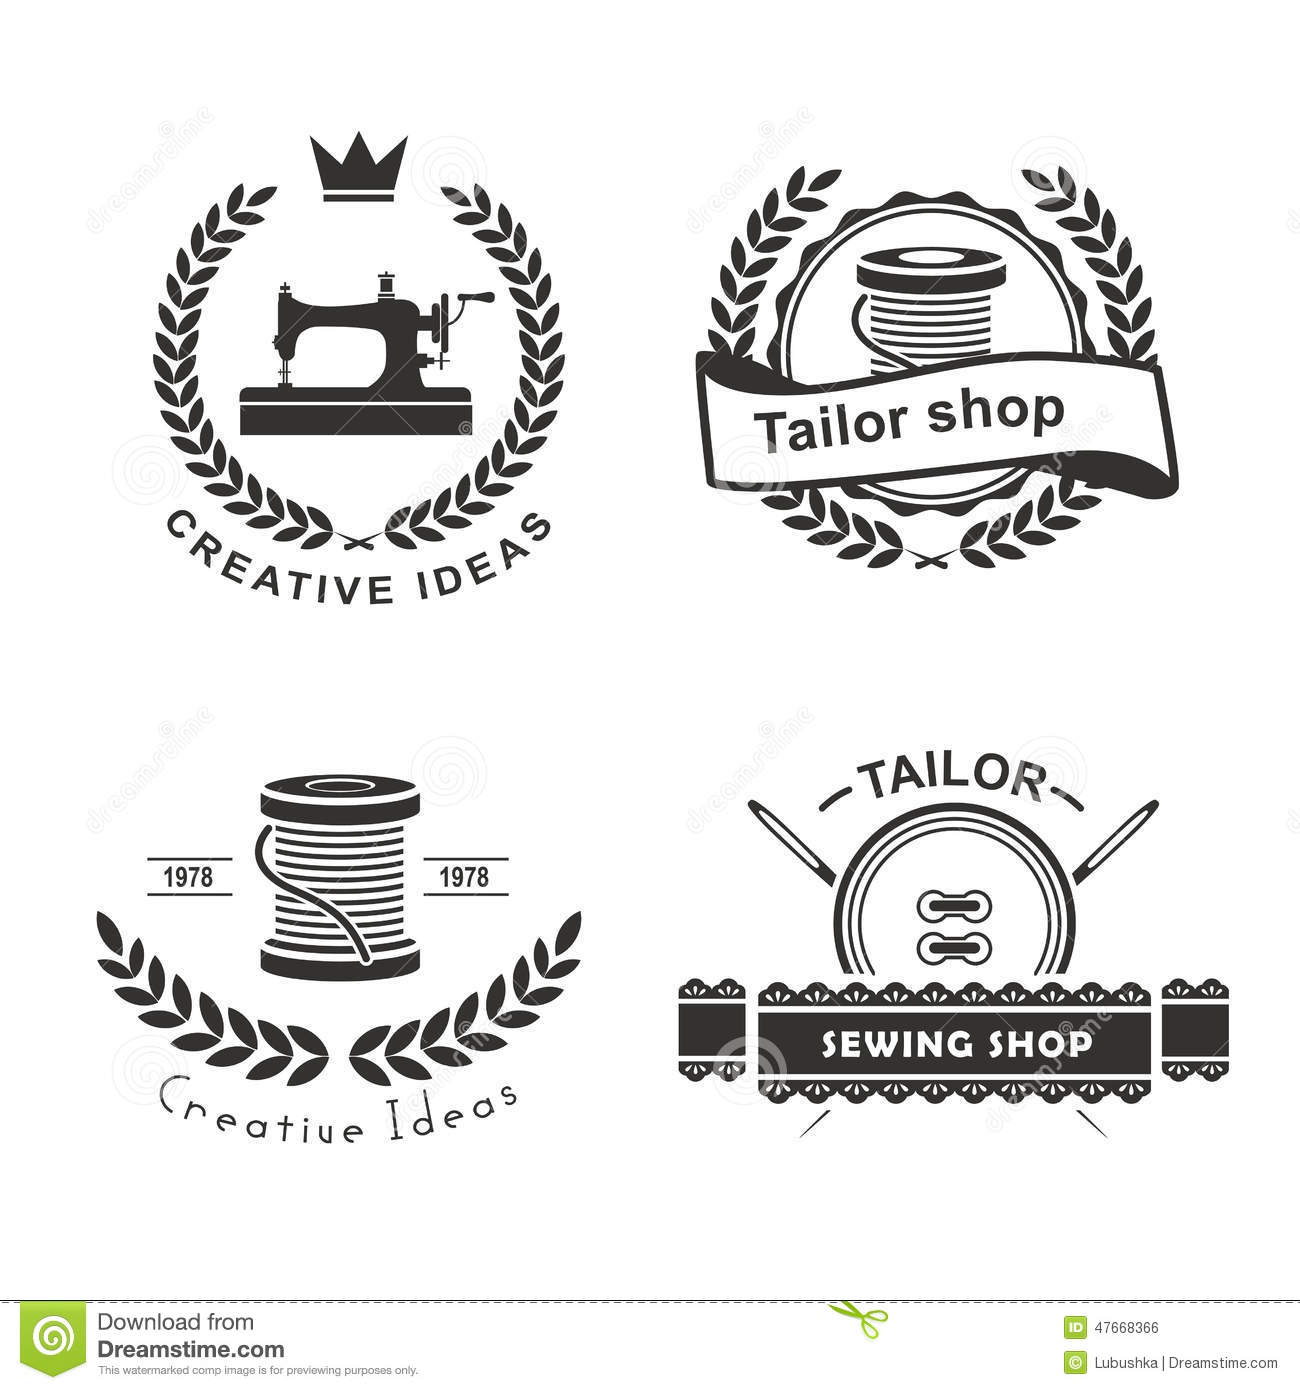 Sewing business cards resumessmberpro sewing business cards magicingreecefo Image collections